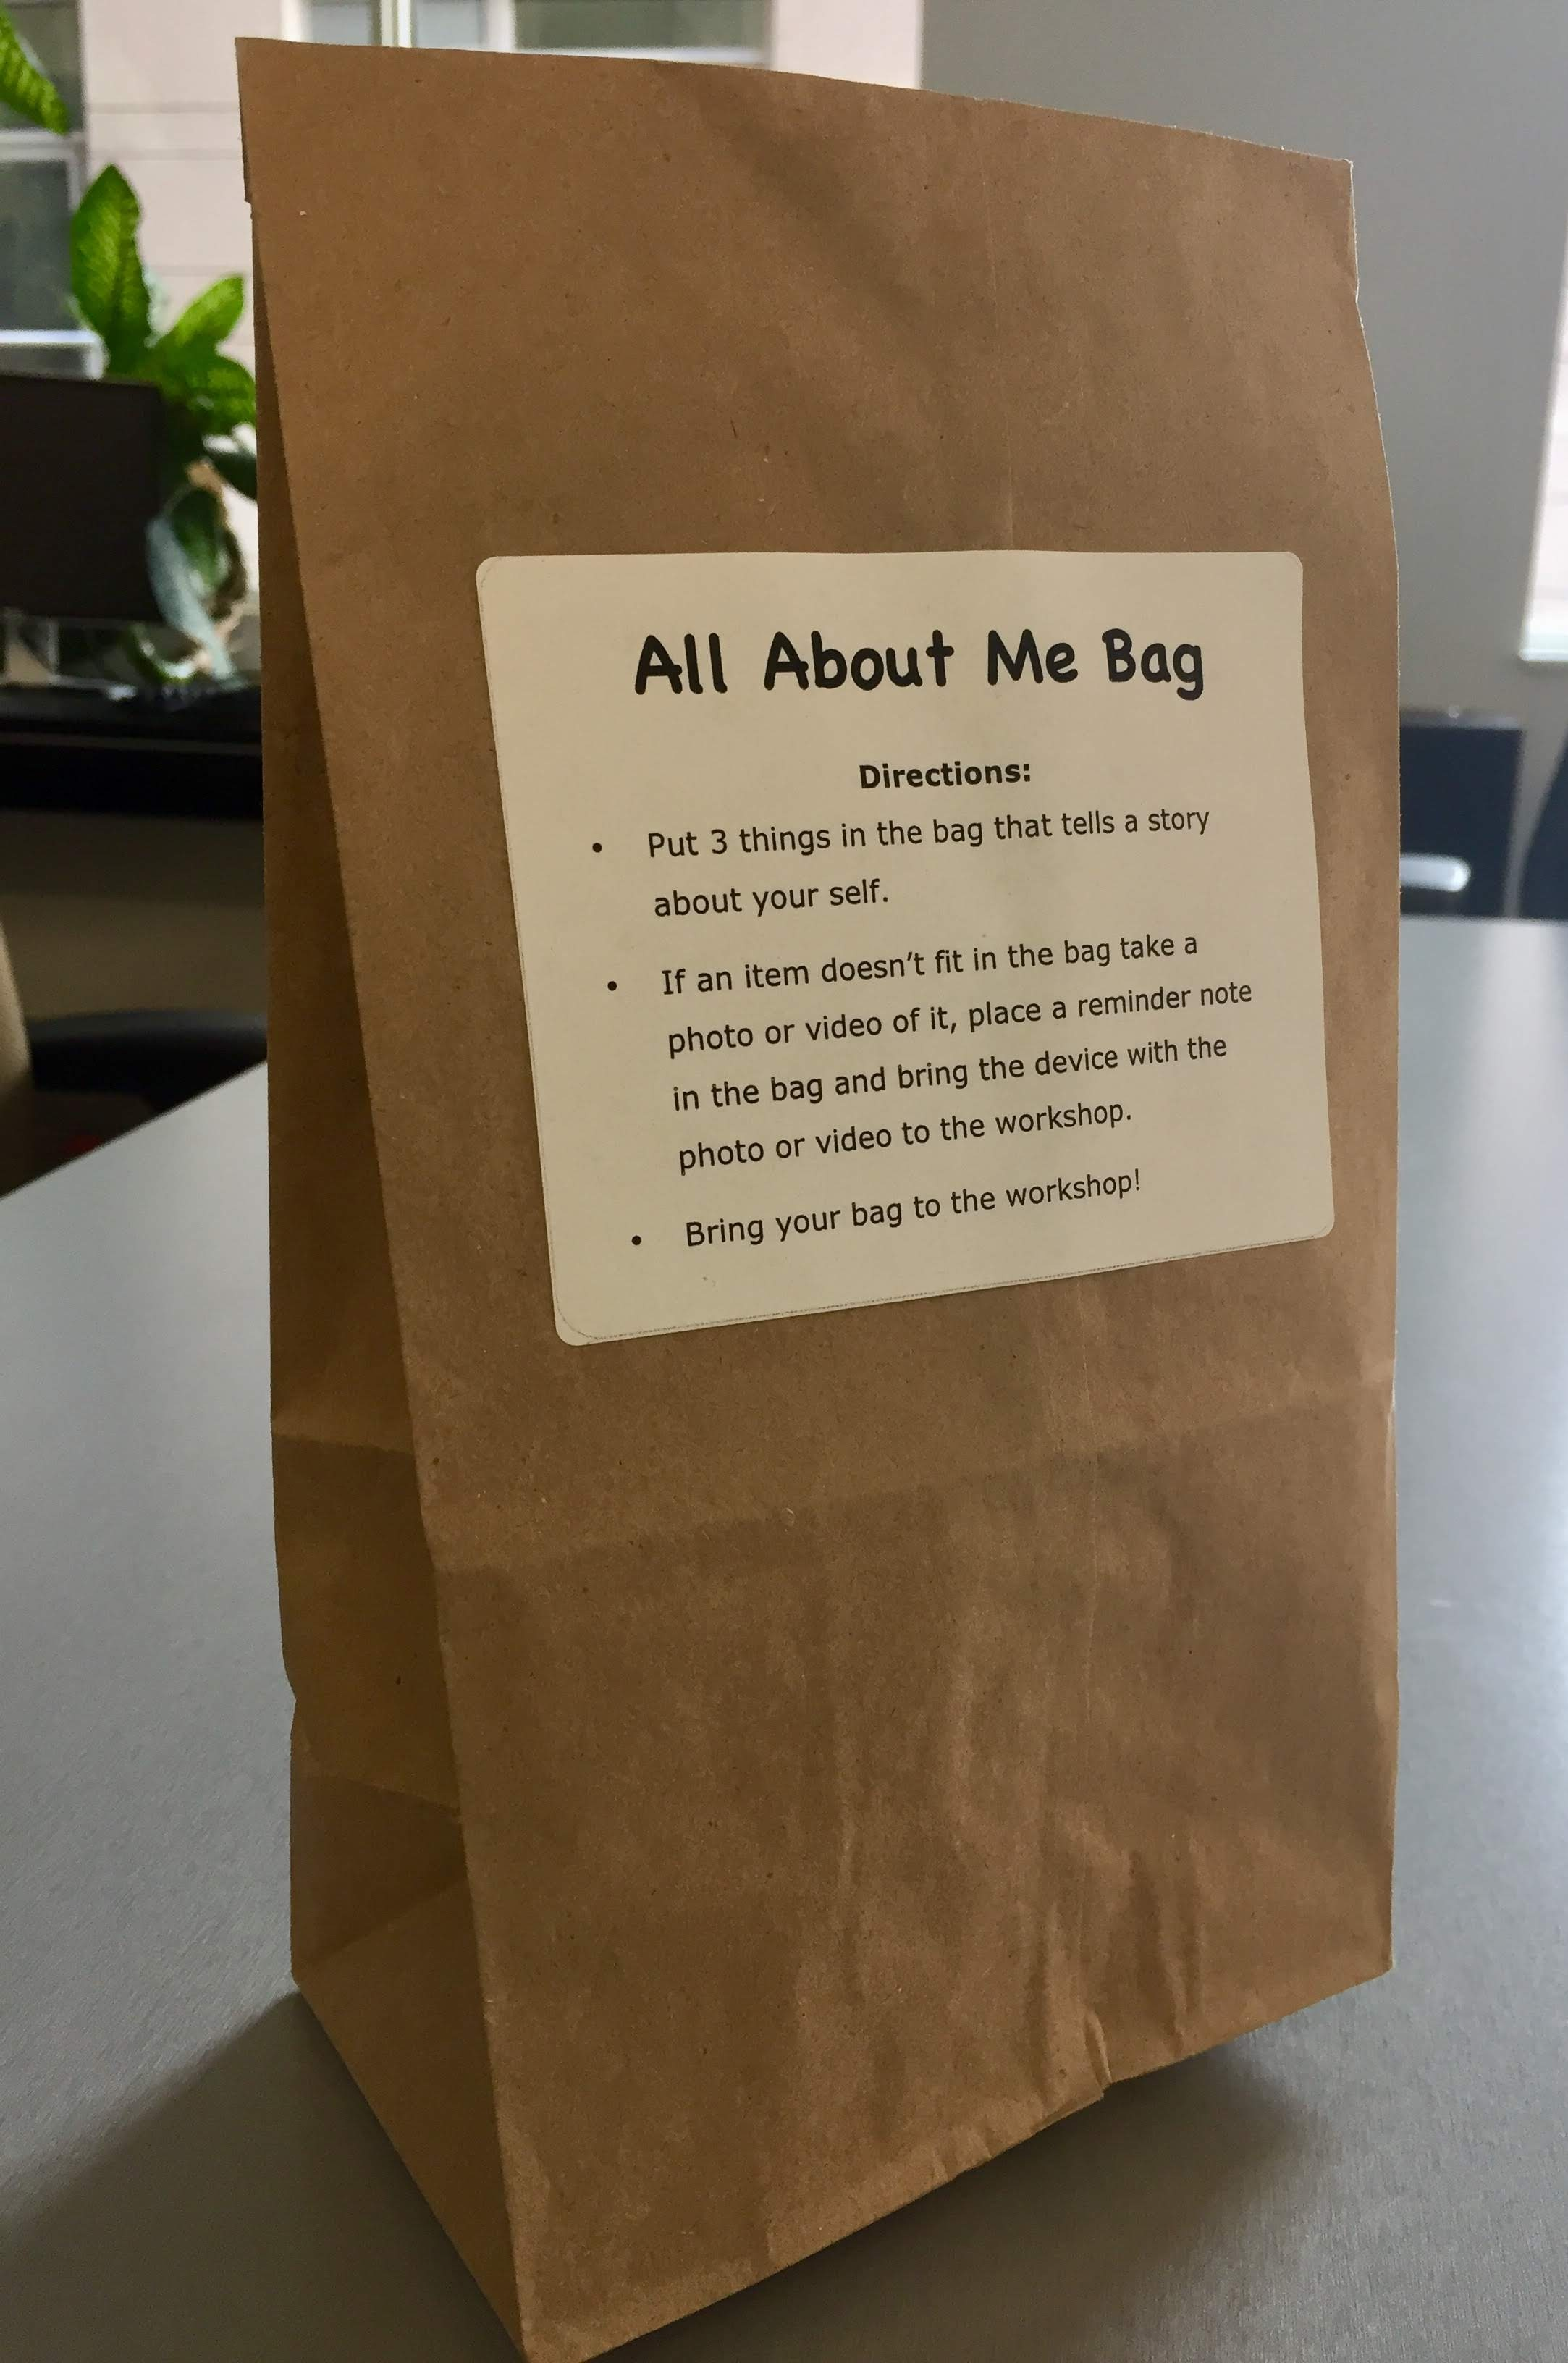 Paper bag with All About Me Bag 3-step instructions label stuck on the front